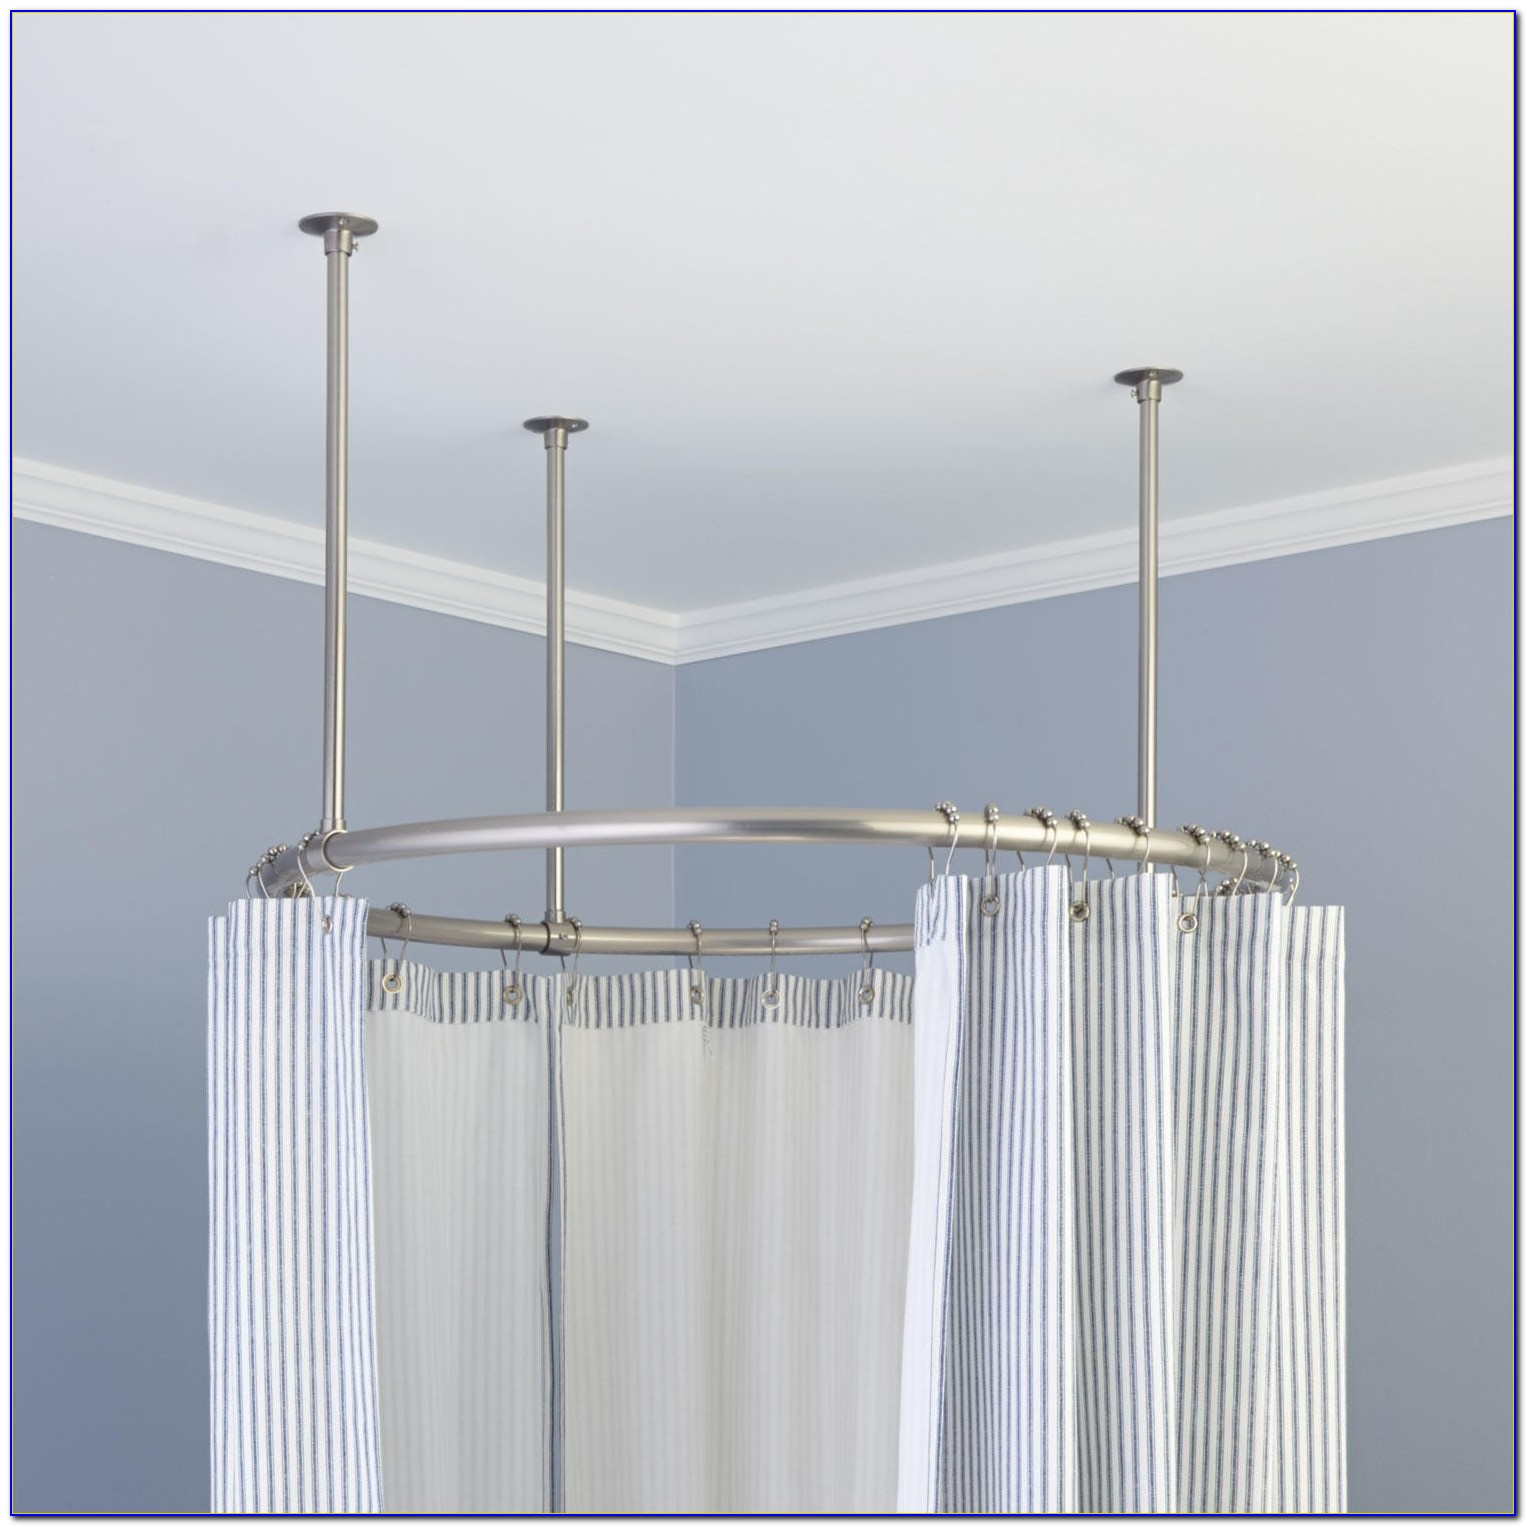 Ceiling Curtain Rod Royals Courage Key Concepts For